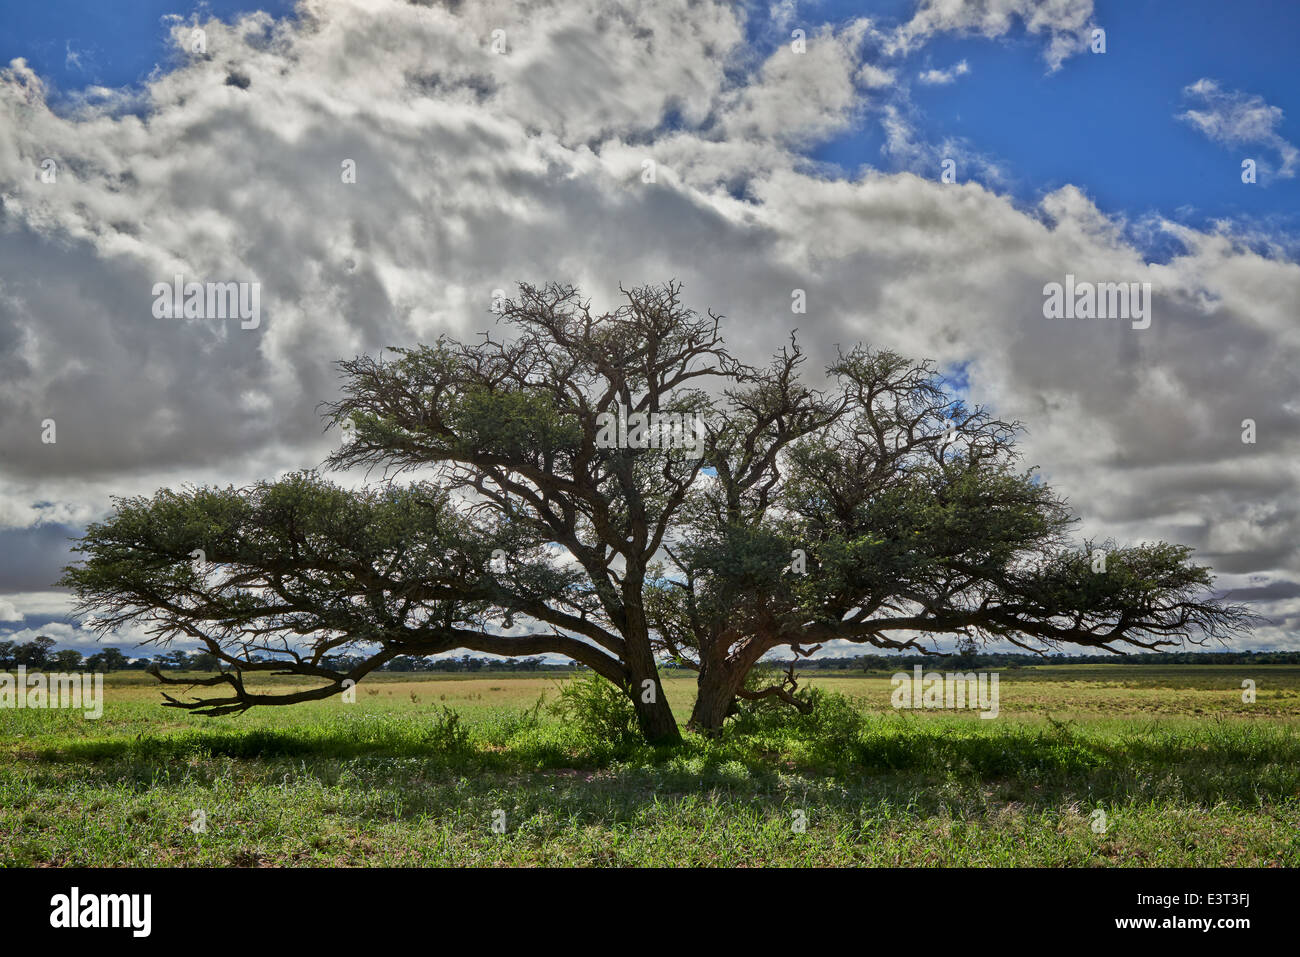 landscape with acacia tree under strong clouds in Kgalagadi Transfrontier Park, Kalahari, South Africa, Botswana, Stock Photo